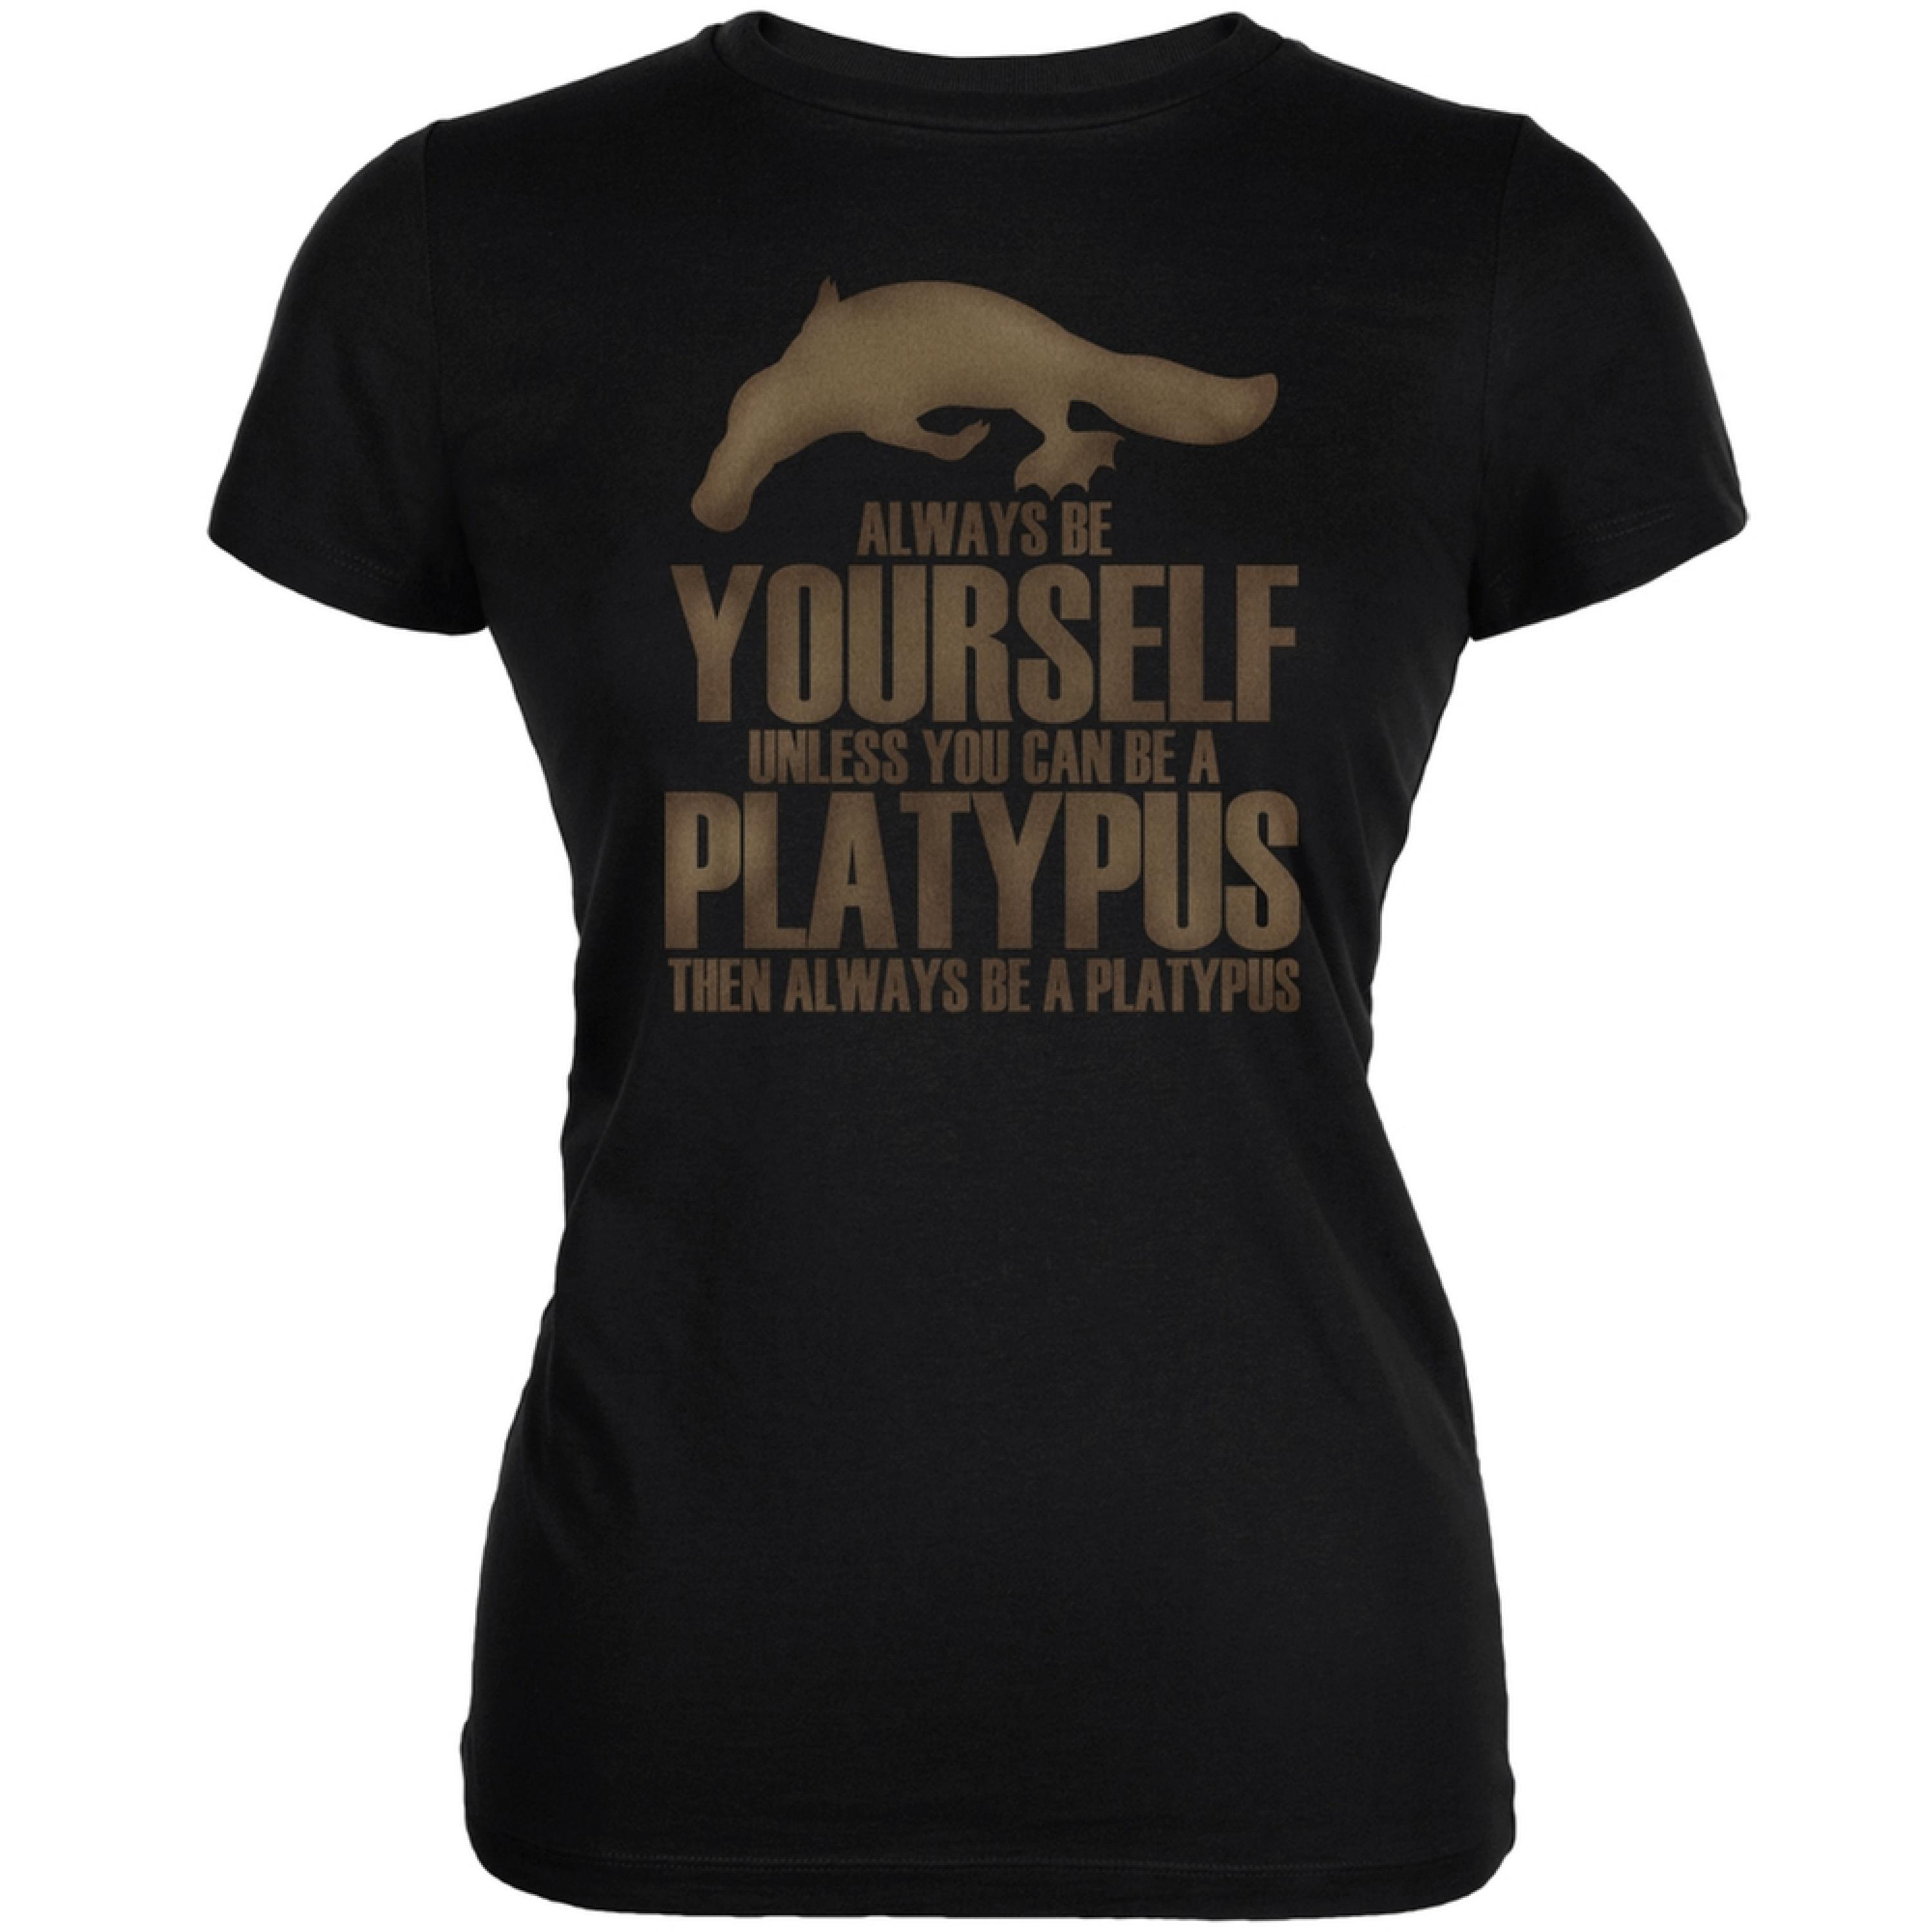 Have Plans with Platypus T Shirt Design Platypus Tee Shirt